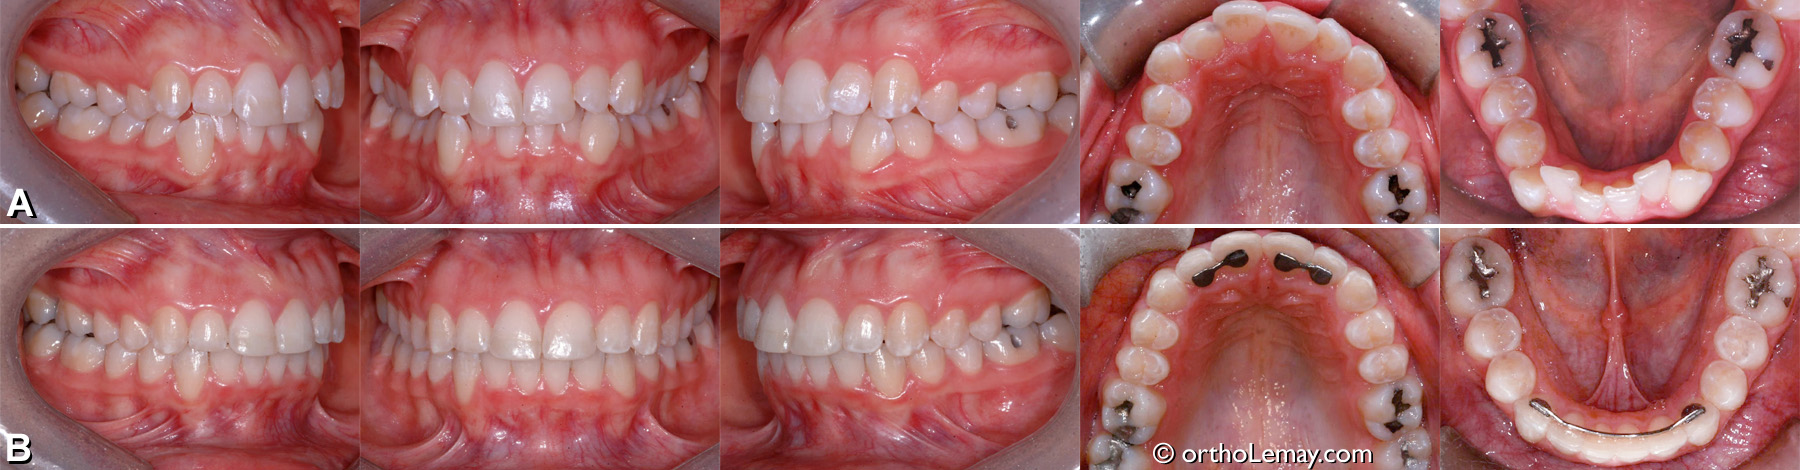 malocclusion dentaire classe 1 , dental crowding, encombrement dentaire, orthodontie Sherbrooke